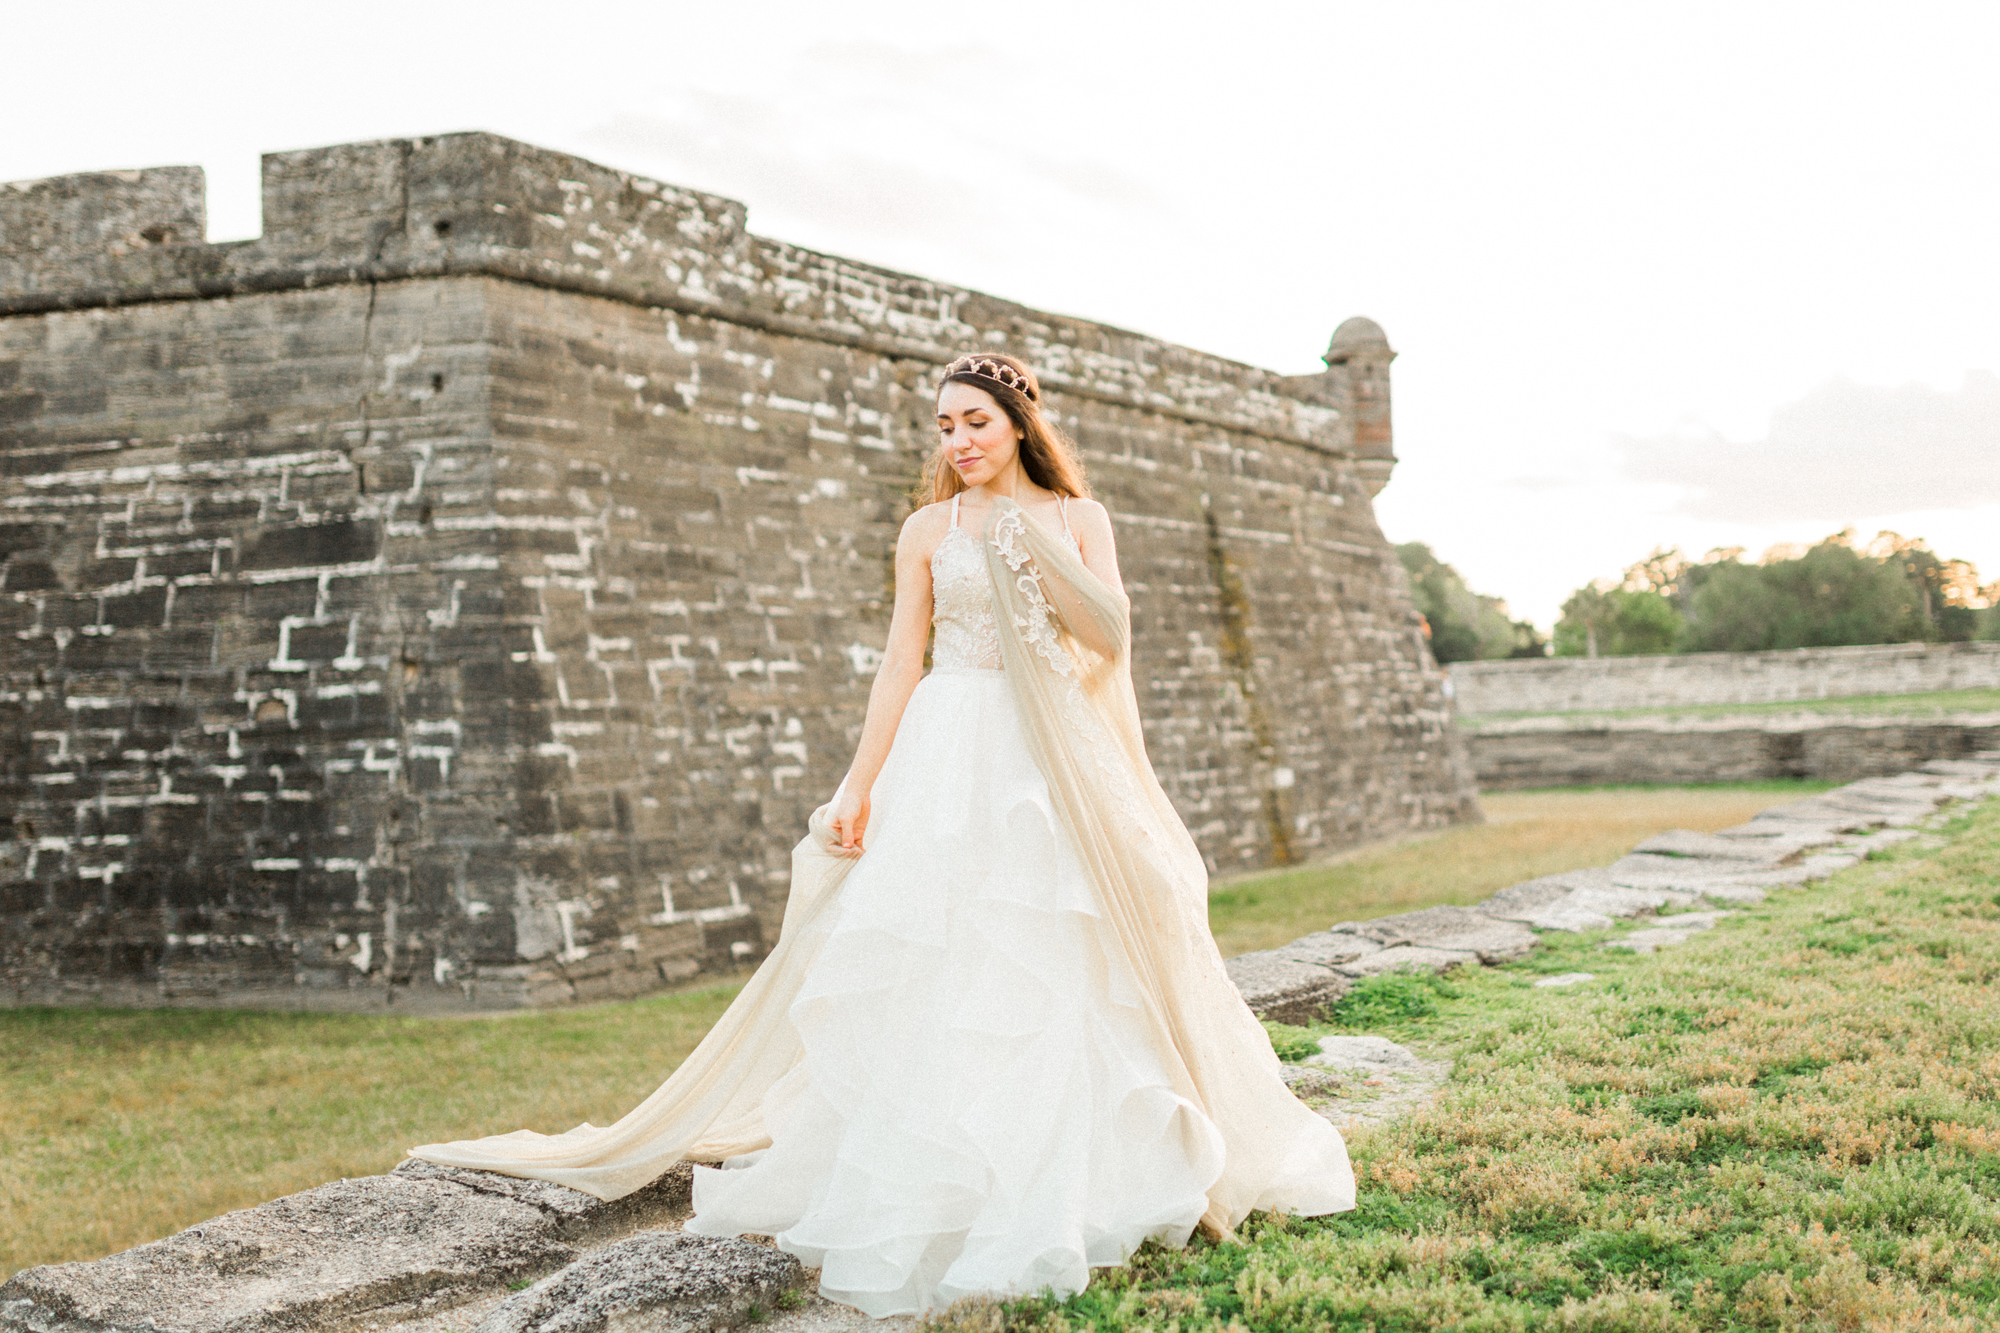 St. augustine, castillo de san marcos styled wedding bridal photo, wedding dress sunset castle